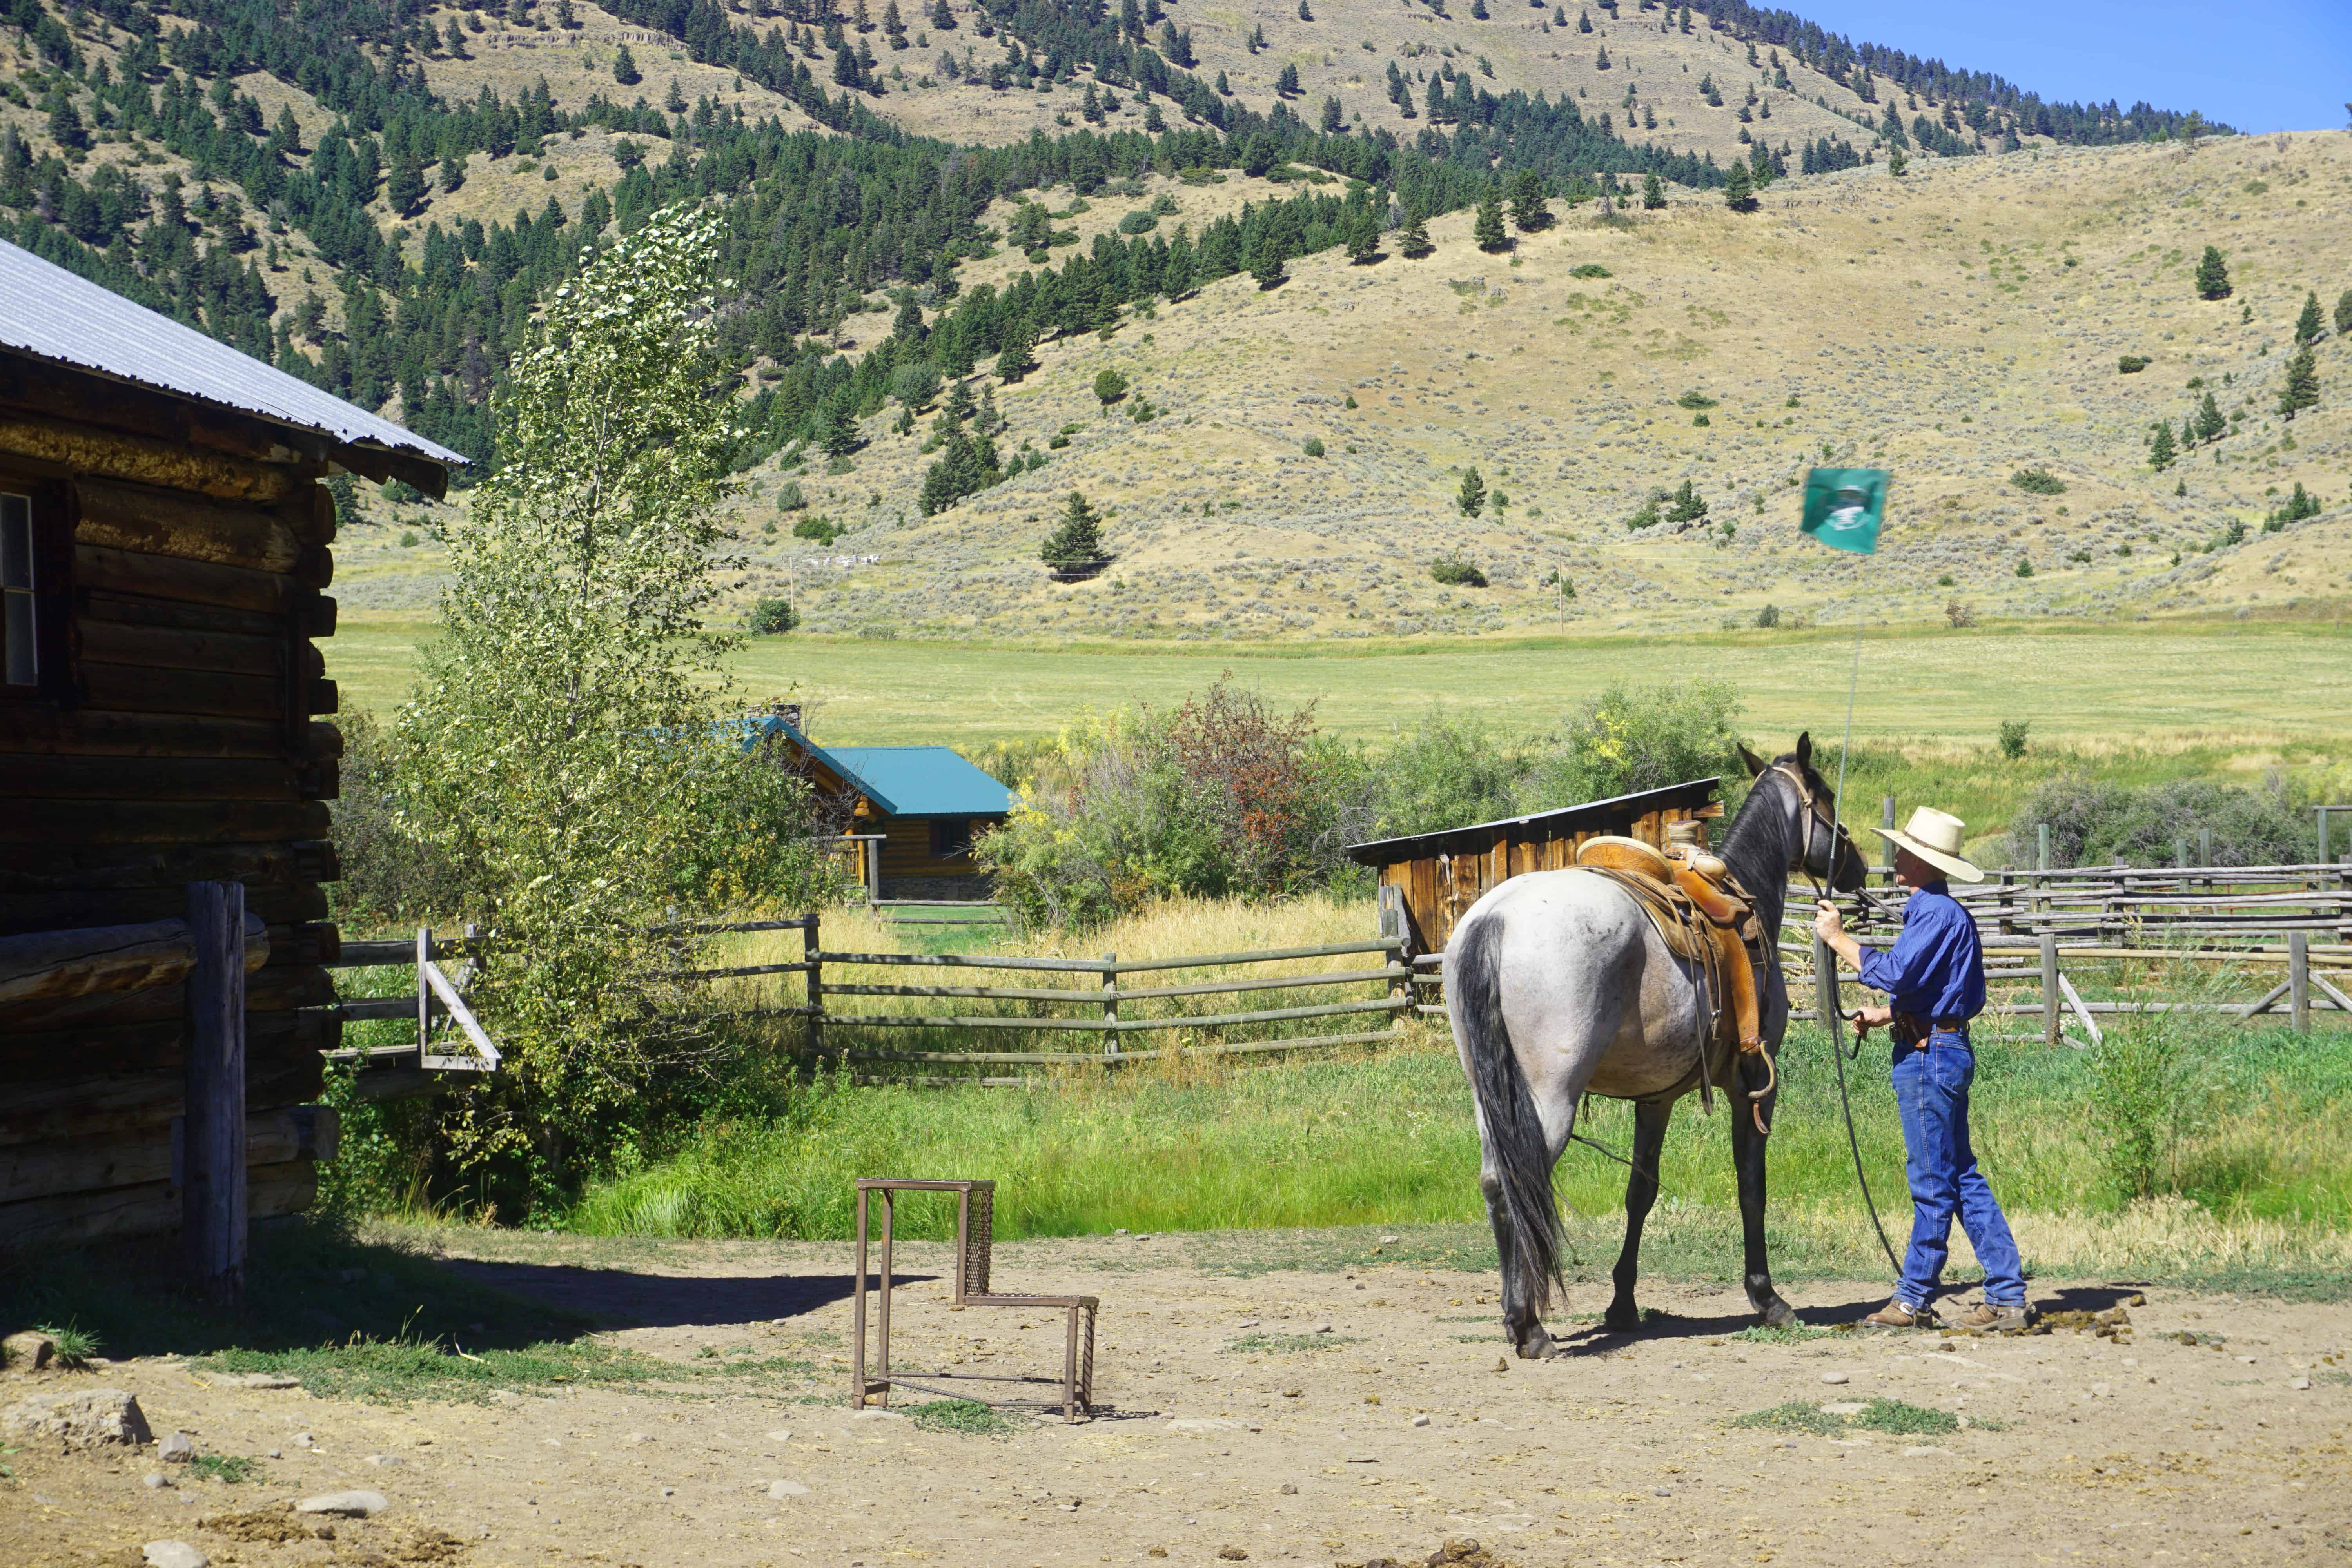 Stay at a Dude Ranch in Your Recreational Vehicle (RV) - RV Hive